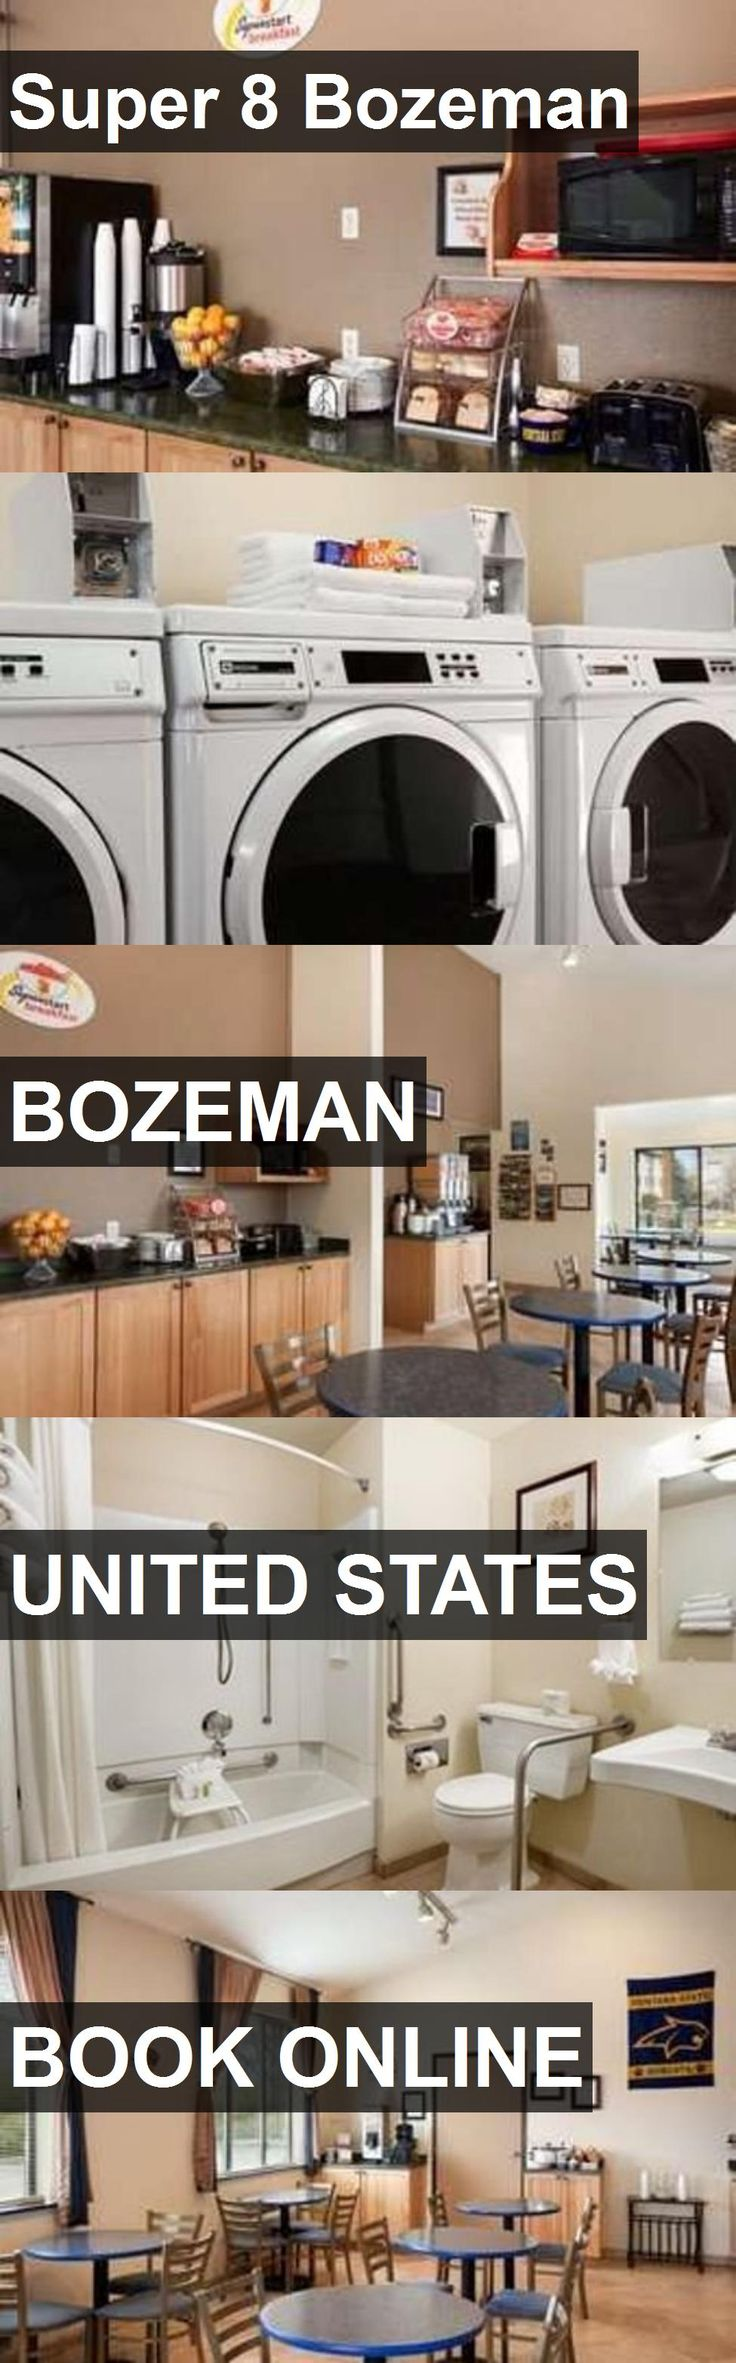 Hotel Super 8 Bozeman in Bozeman, United States. For more information, photos, reviews and best prices please follow the link. #UnitedStates #Bozeman #travel #vacation #hotel